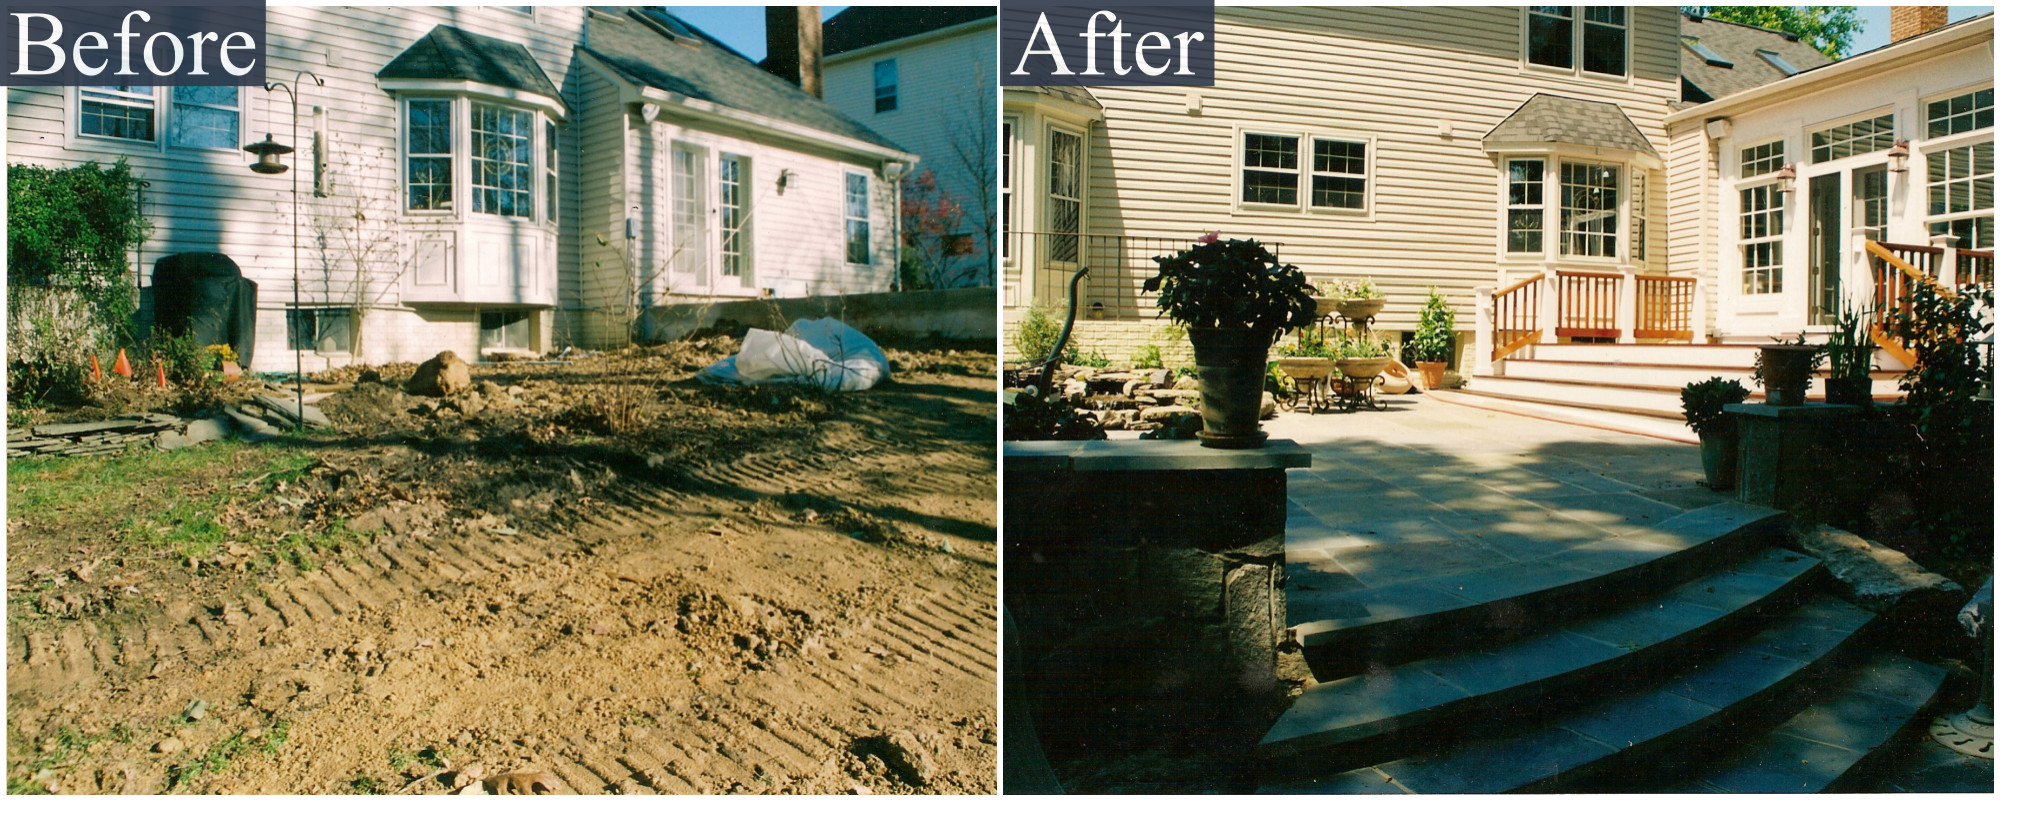 Before/ Afters